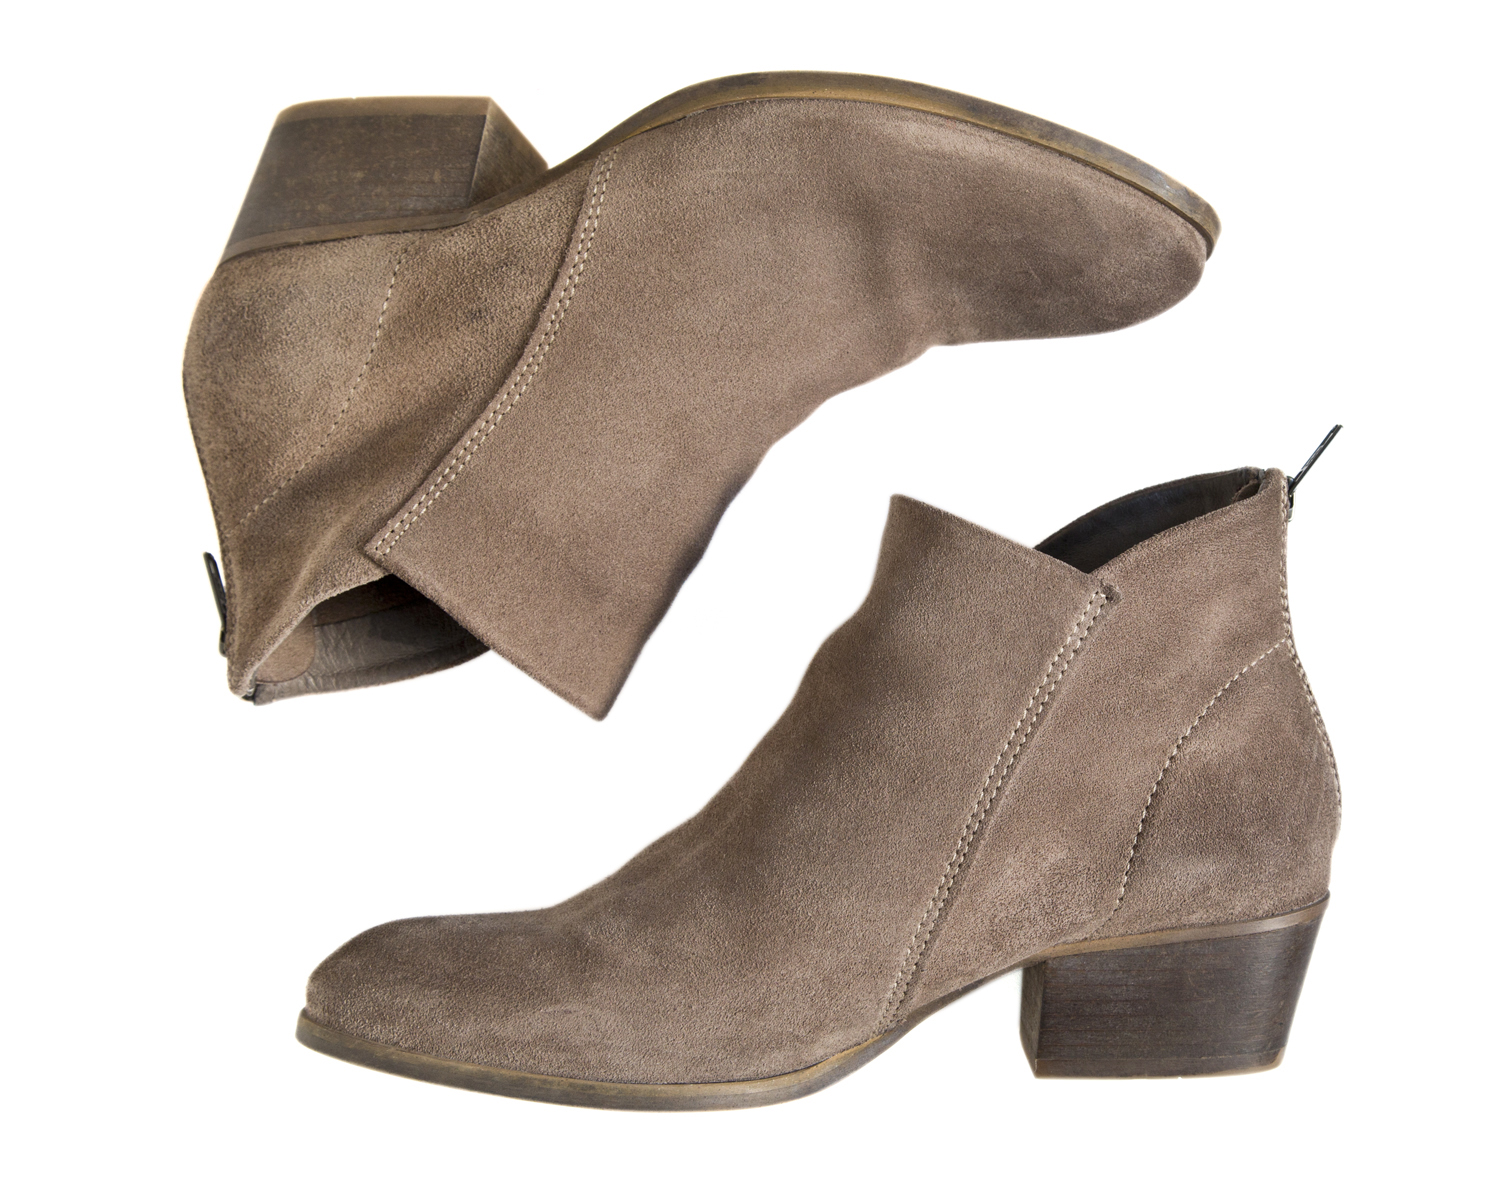 H by Hudson Apisi Ankle Boots